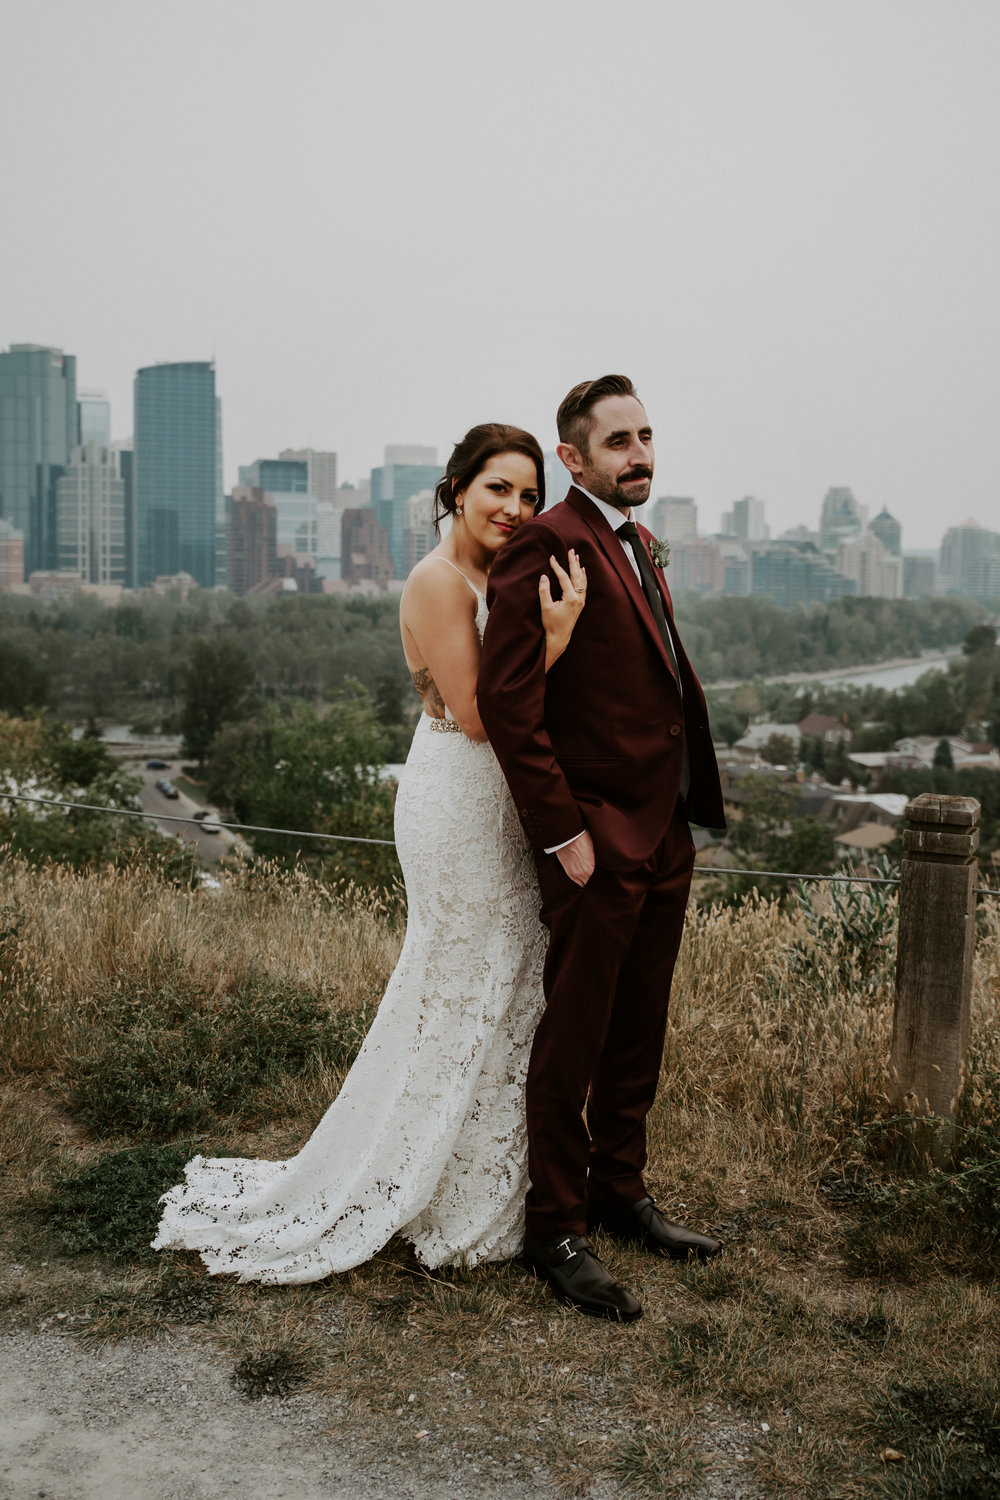 Calgary Wedding Photographer - 71 of 84.jpg